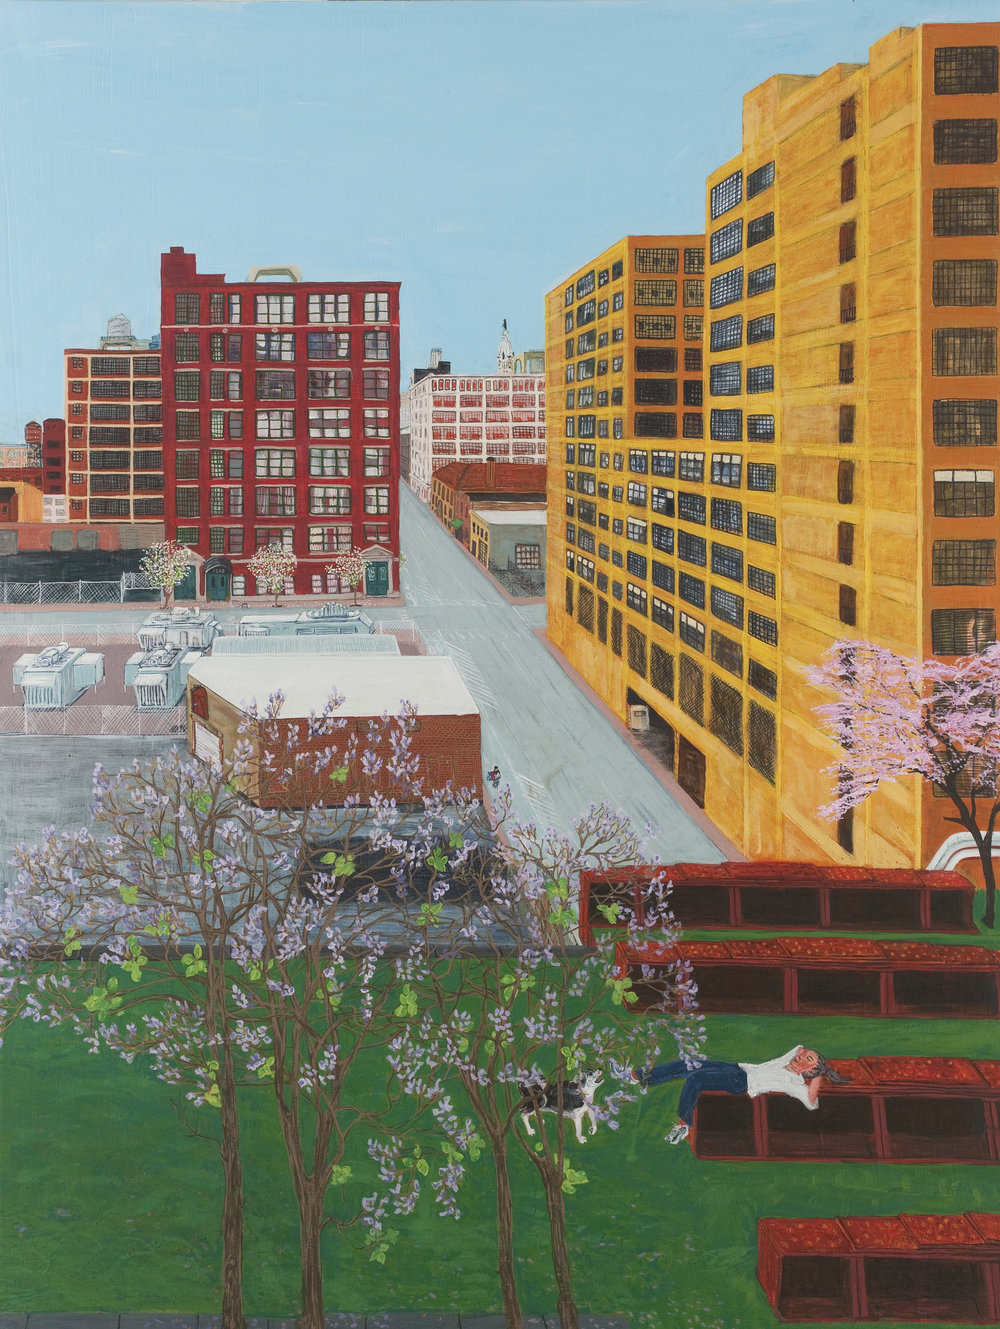 Trestletown, 13th and Noble , 2012, acrylic on linen, 48 x 36 inches. Image courtesy of Locks Gallery